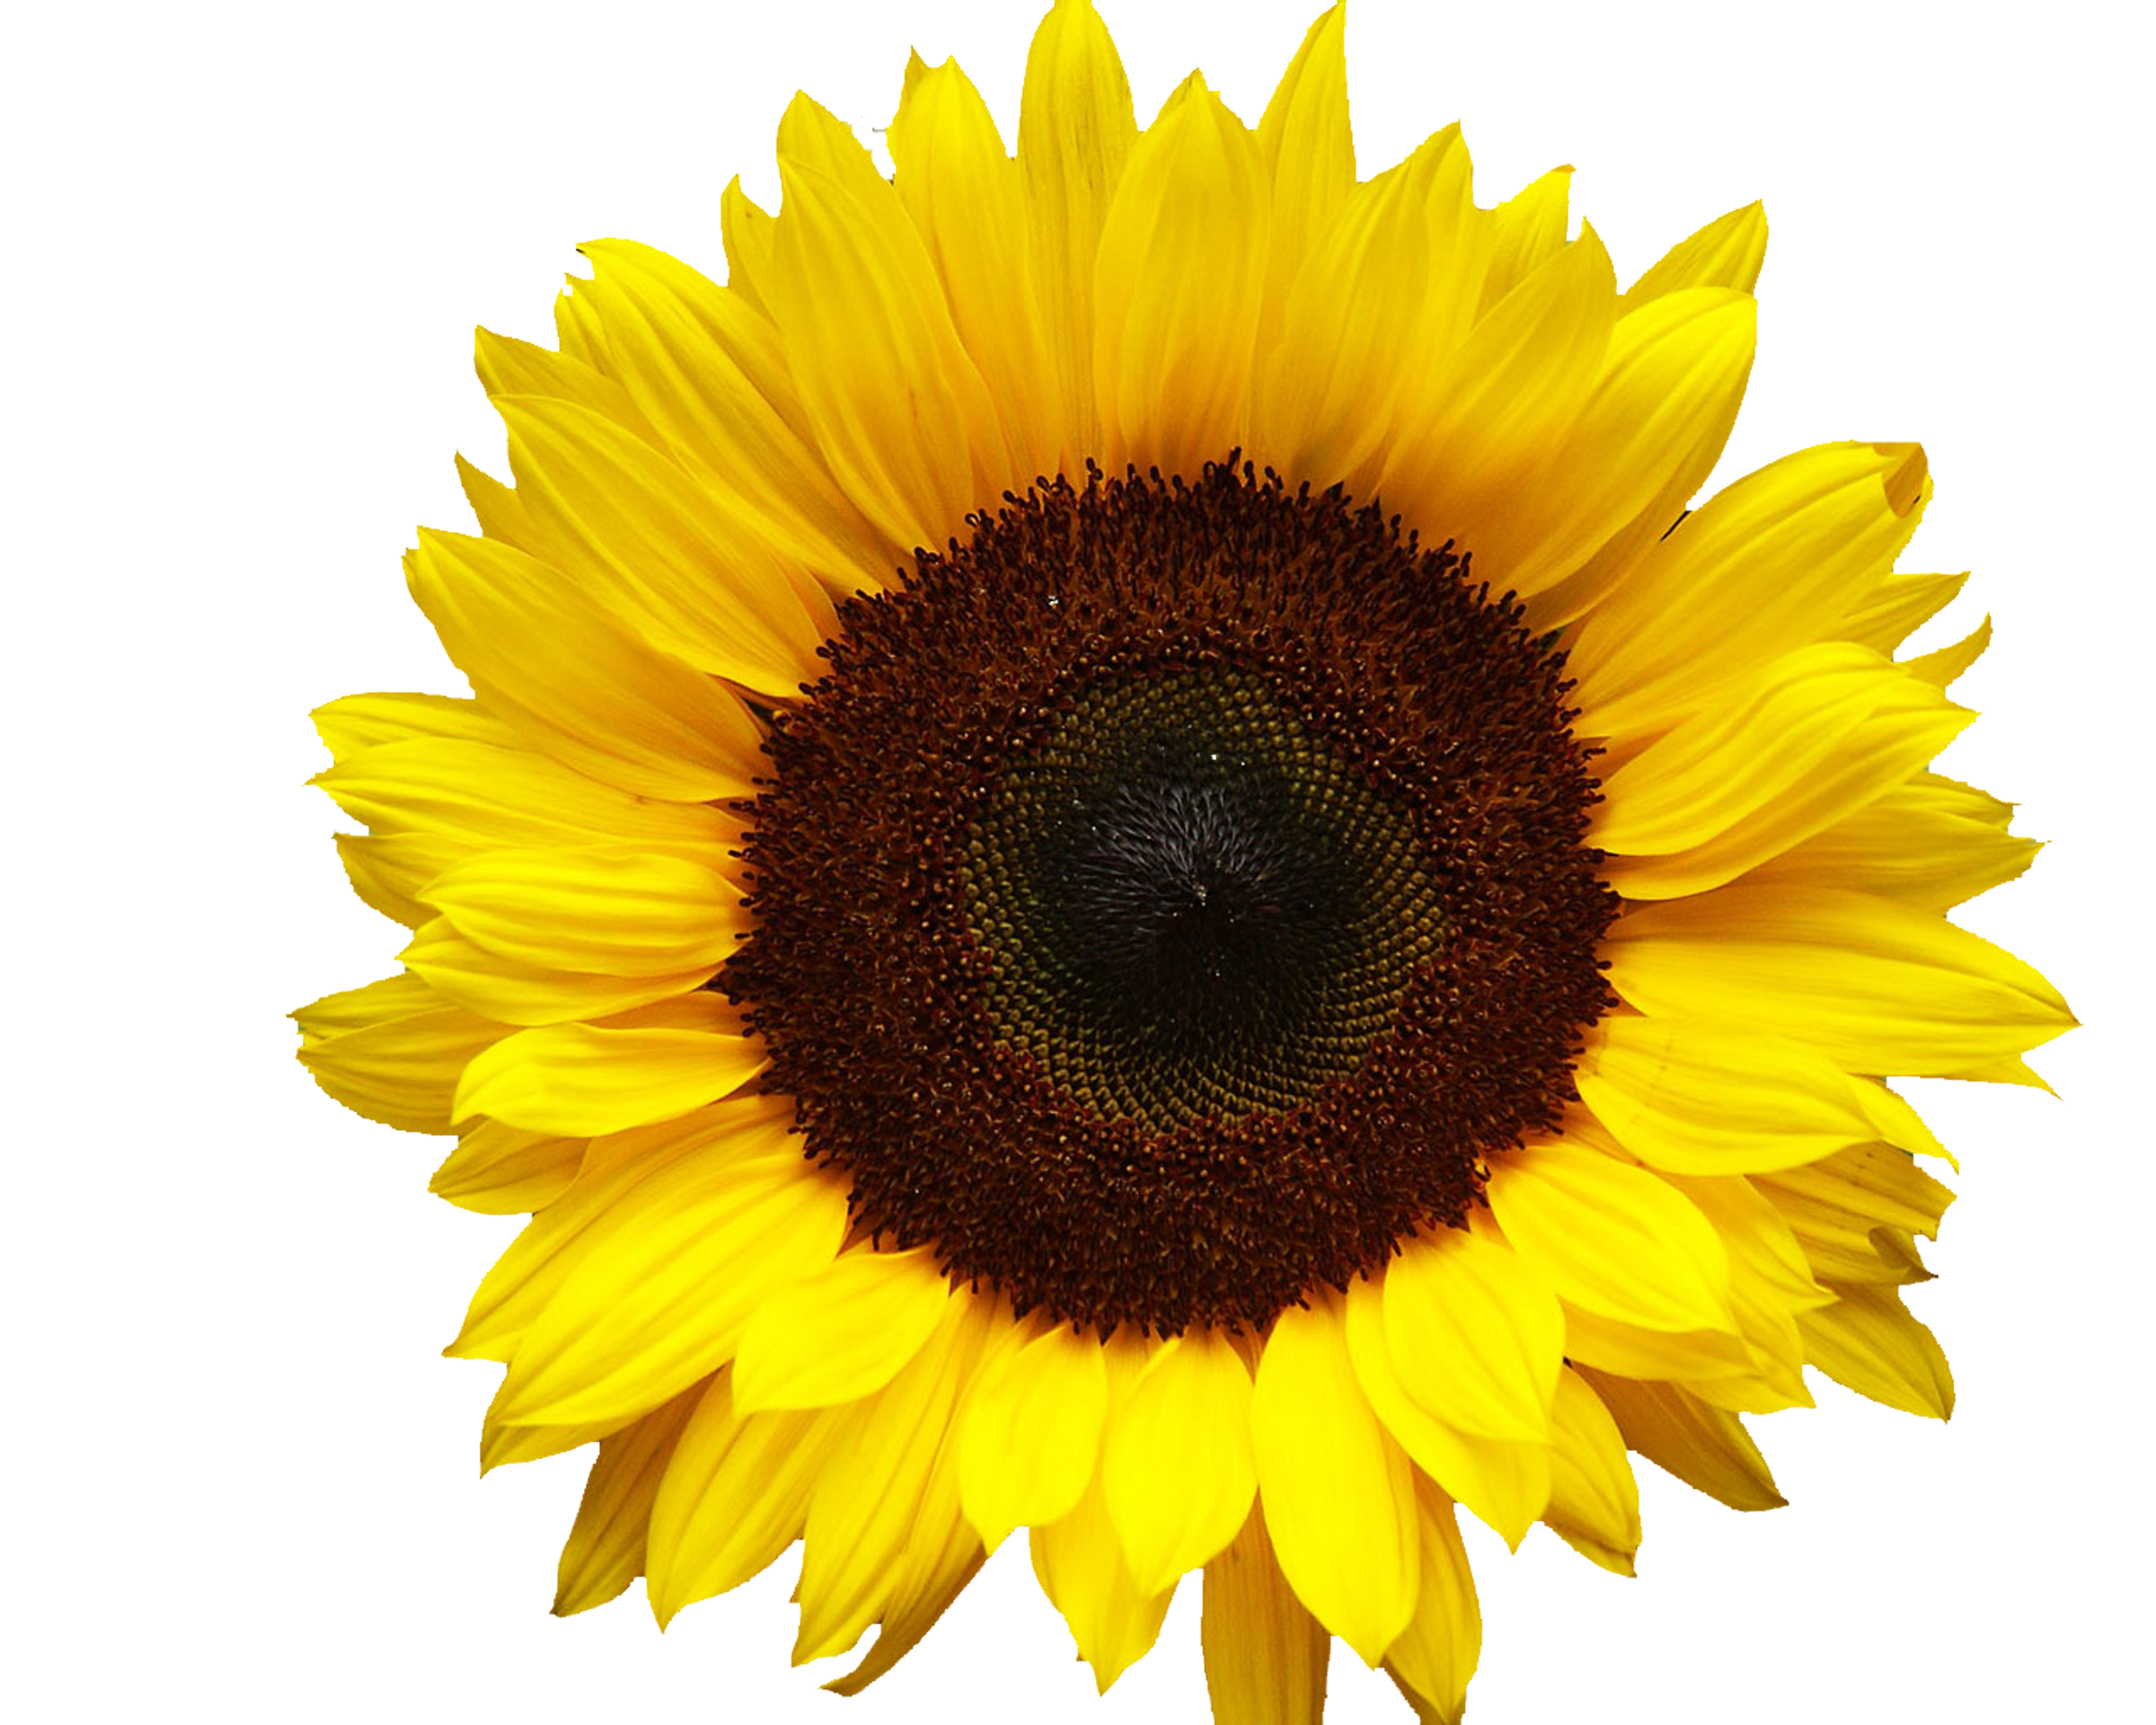 Sunflowers png aesthetic. Google image result for